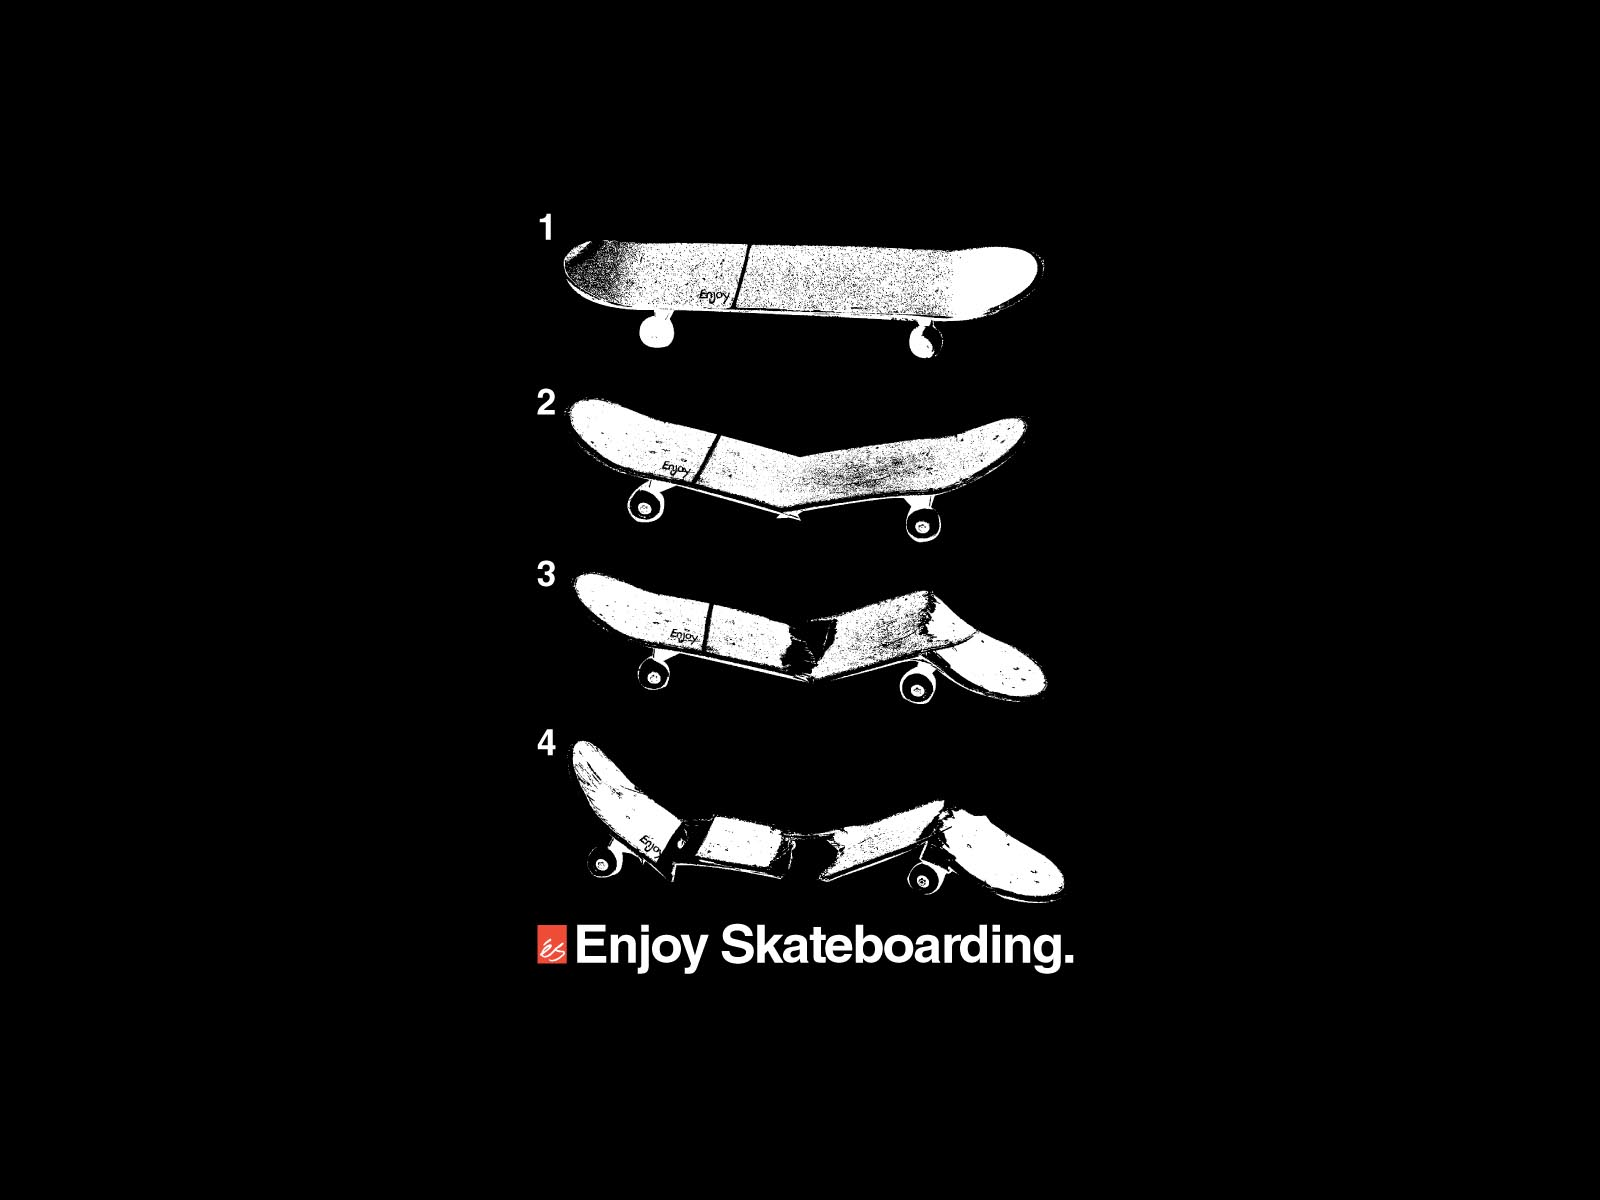 Skate Wallpaper Iphone